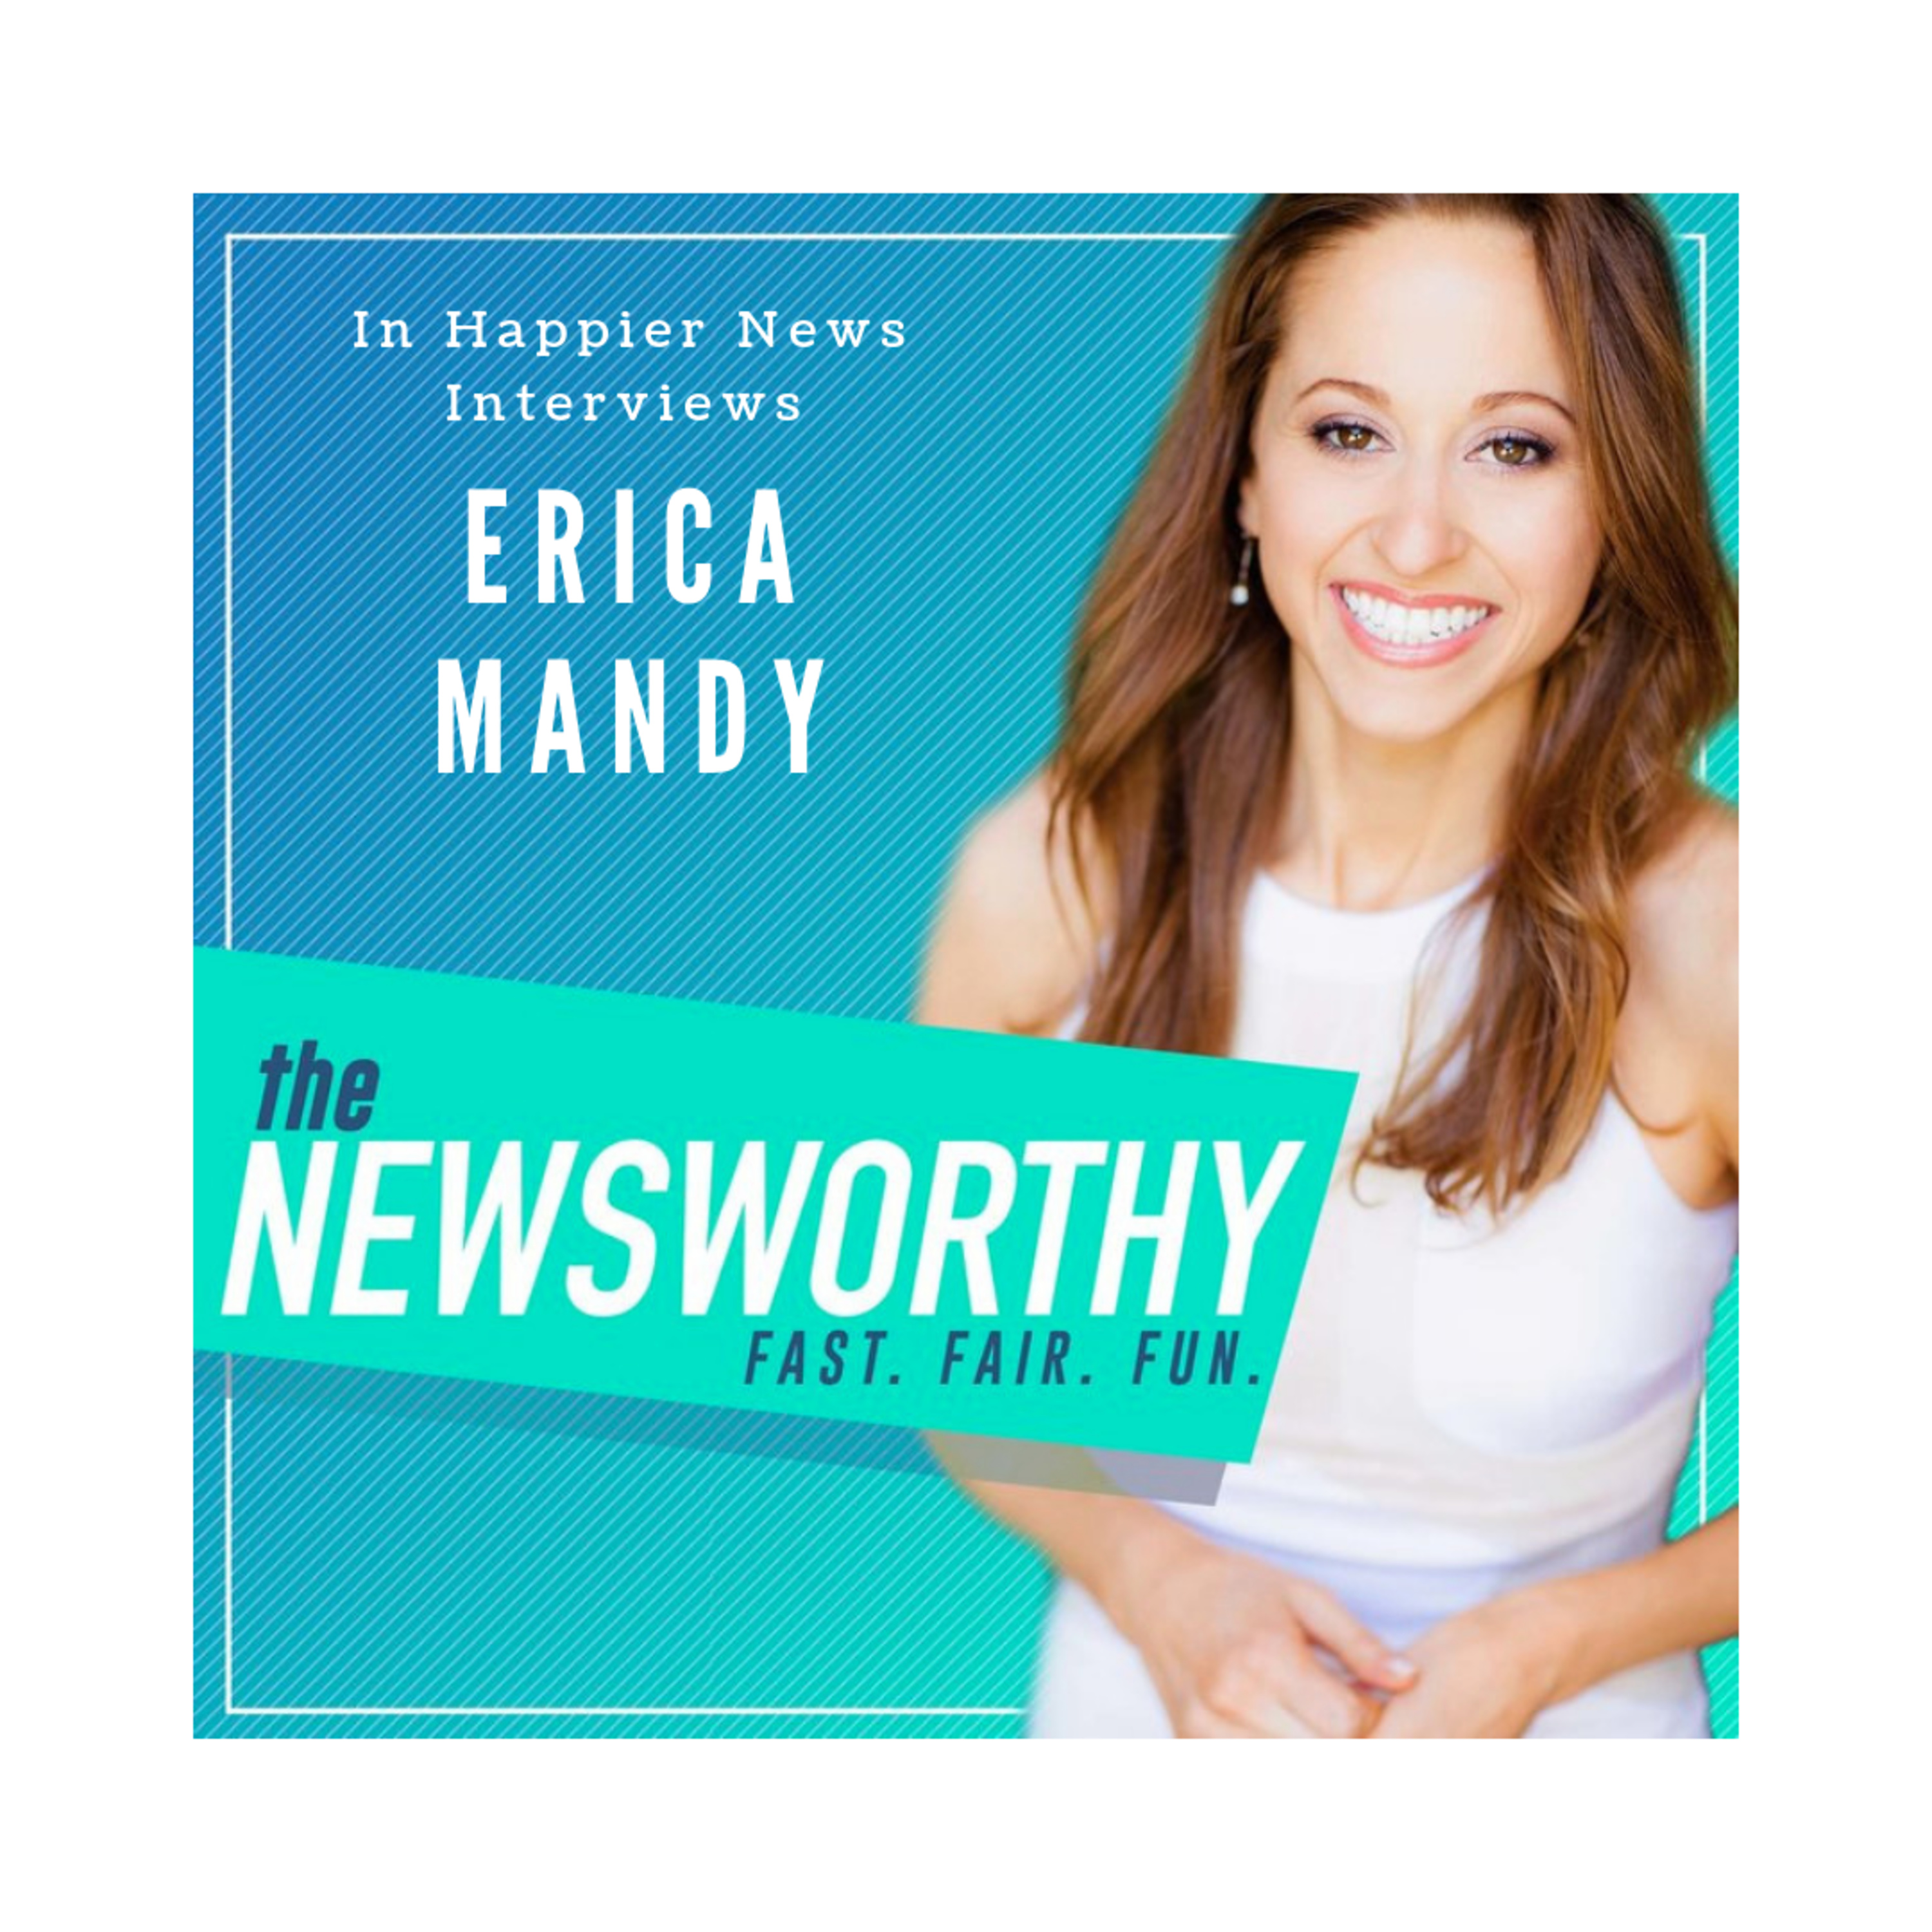 Erica Mandy Makes the News Fast, Fair and Fun with The Newsworthy